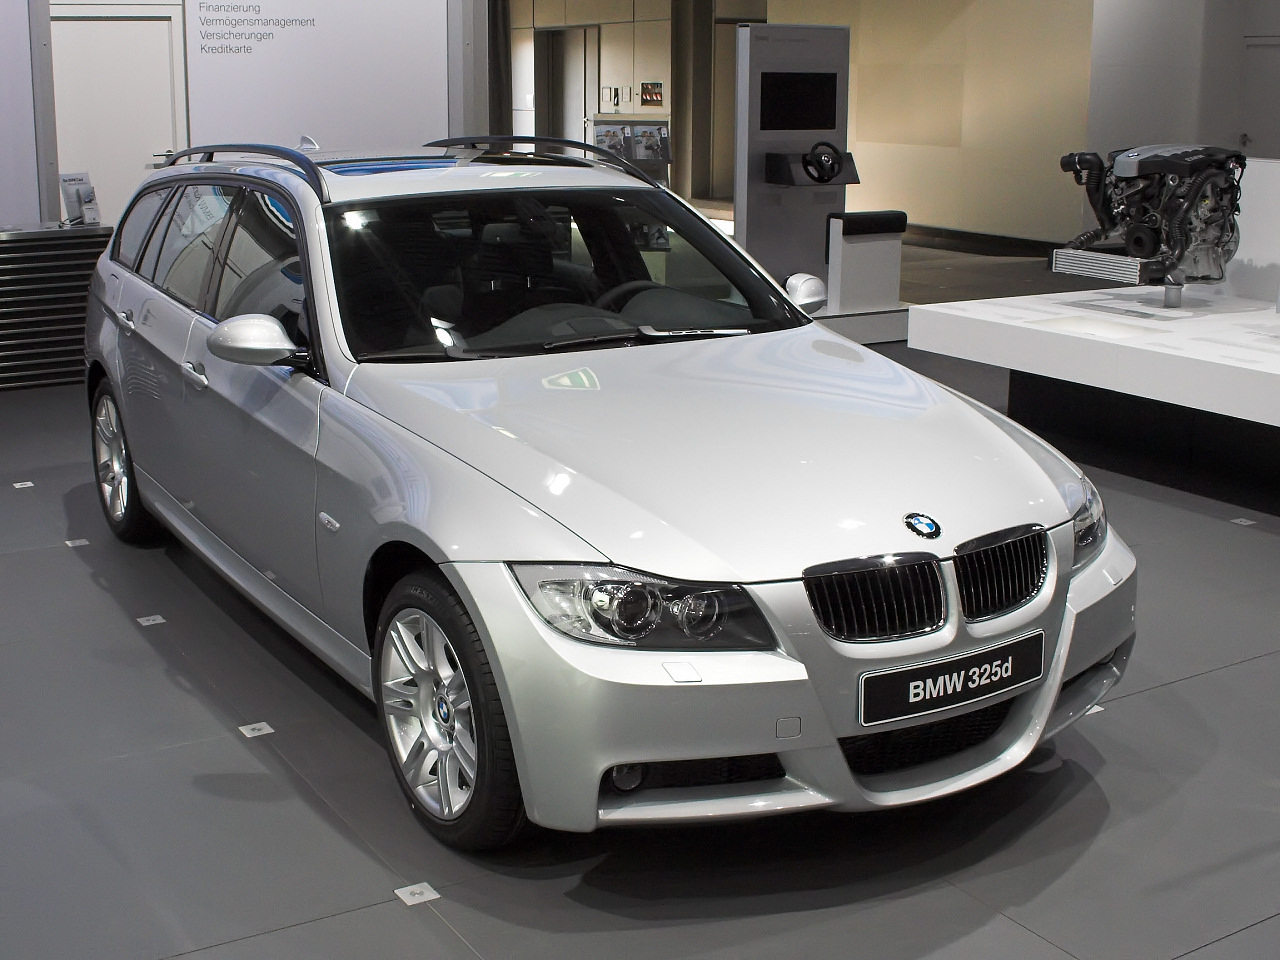 bmw 325d touring photos and comments. Black Bedroom Furniture Sets. Home Design Ideas